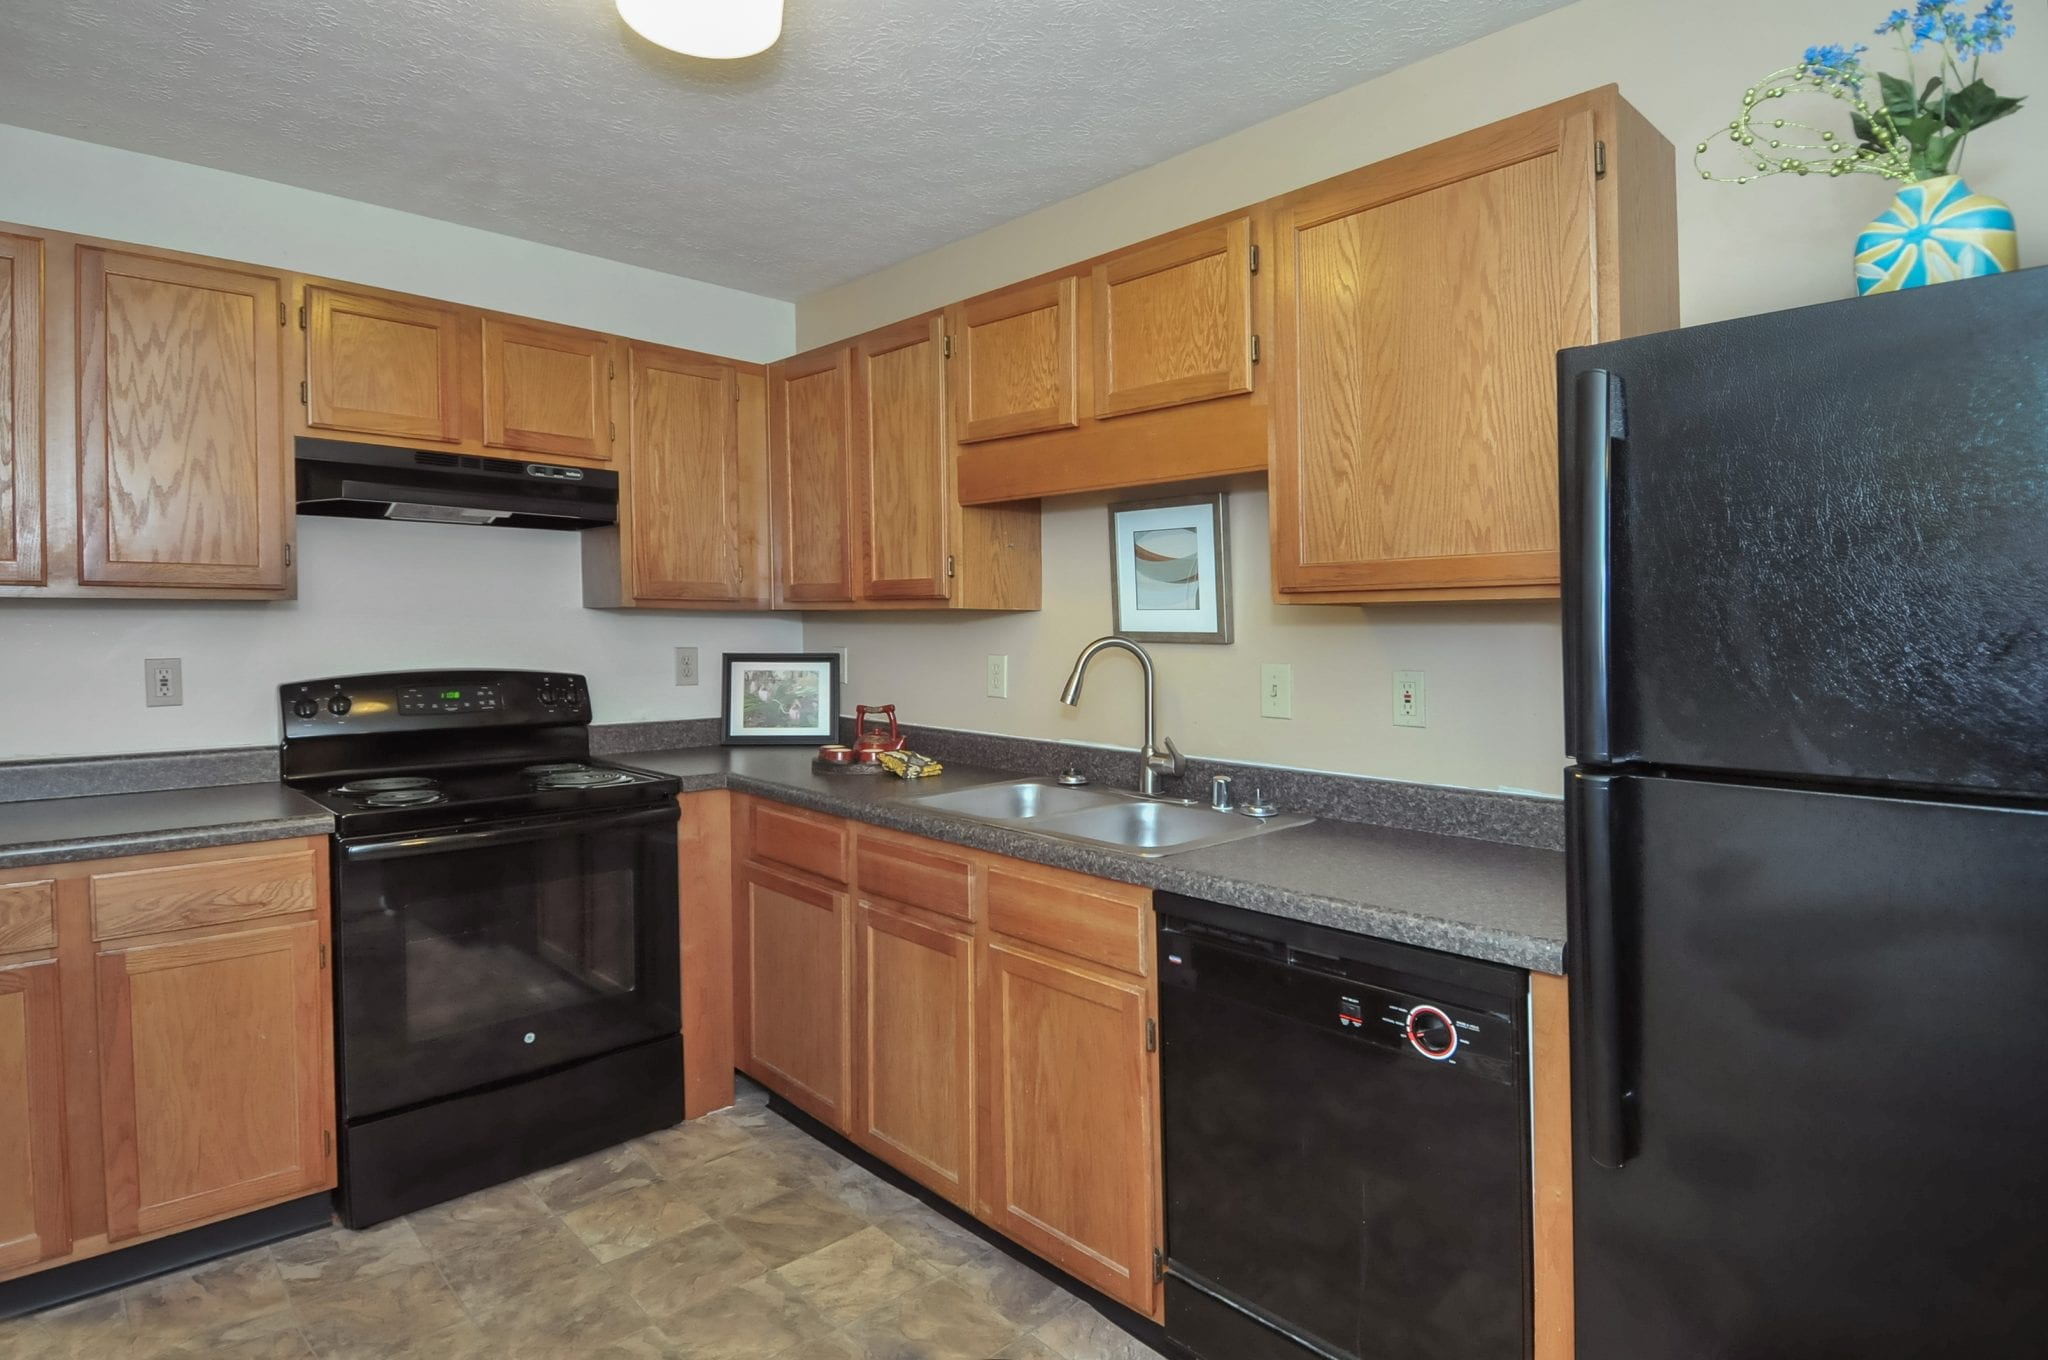 Renovated kitchen with new appliances!